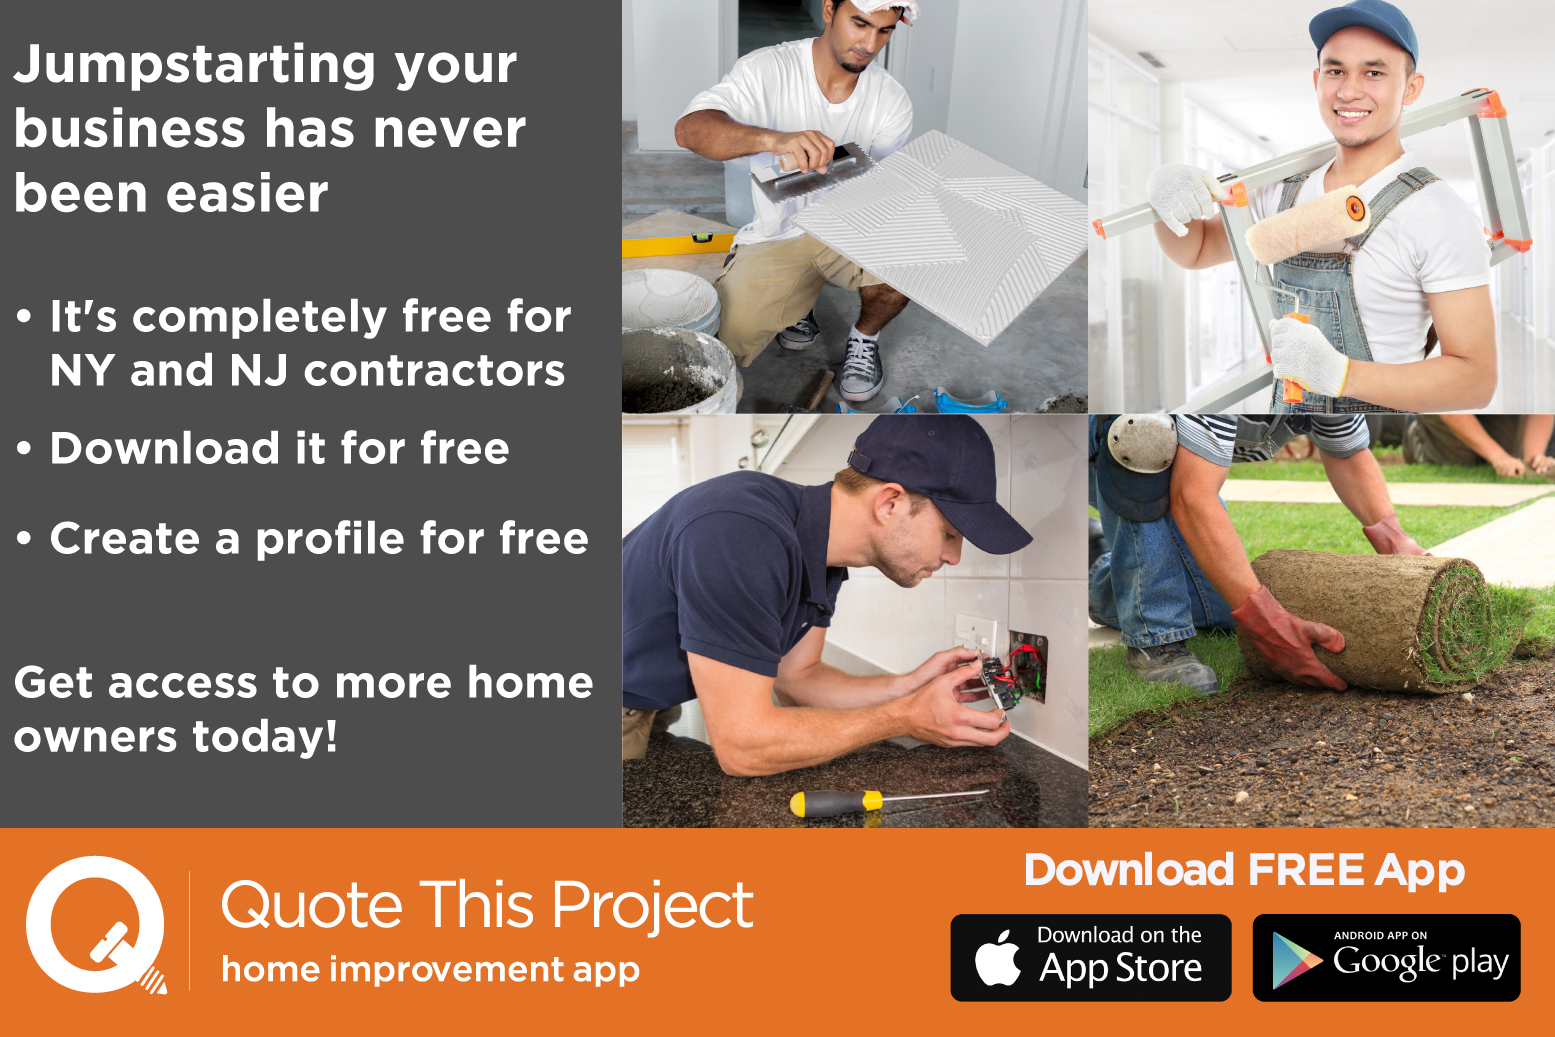 If you are a handyman, painter, landscaper, tile setter or